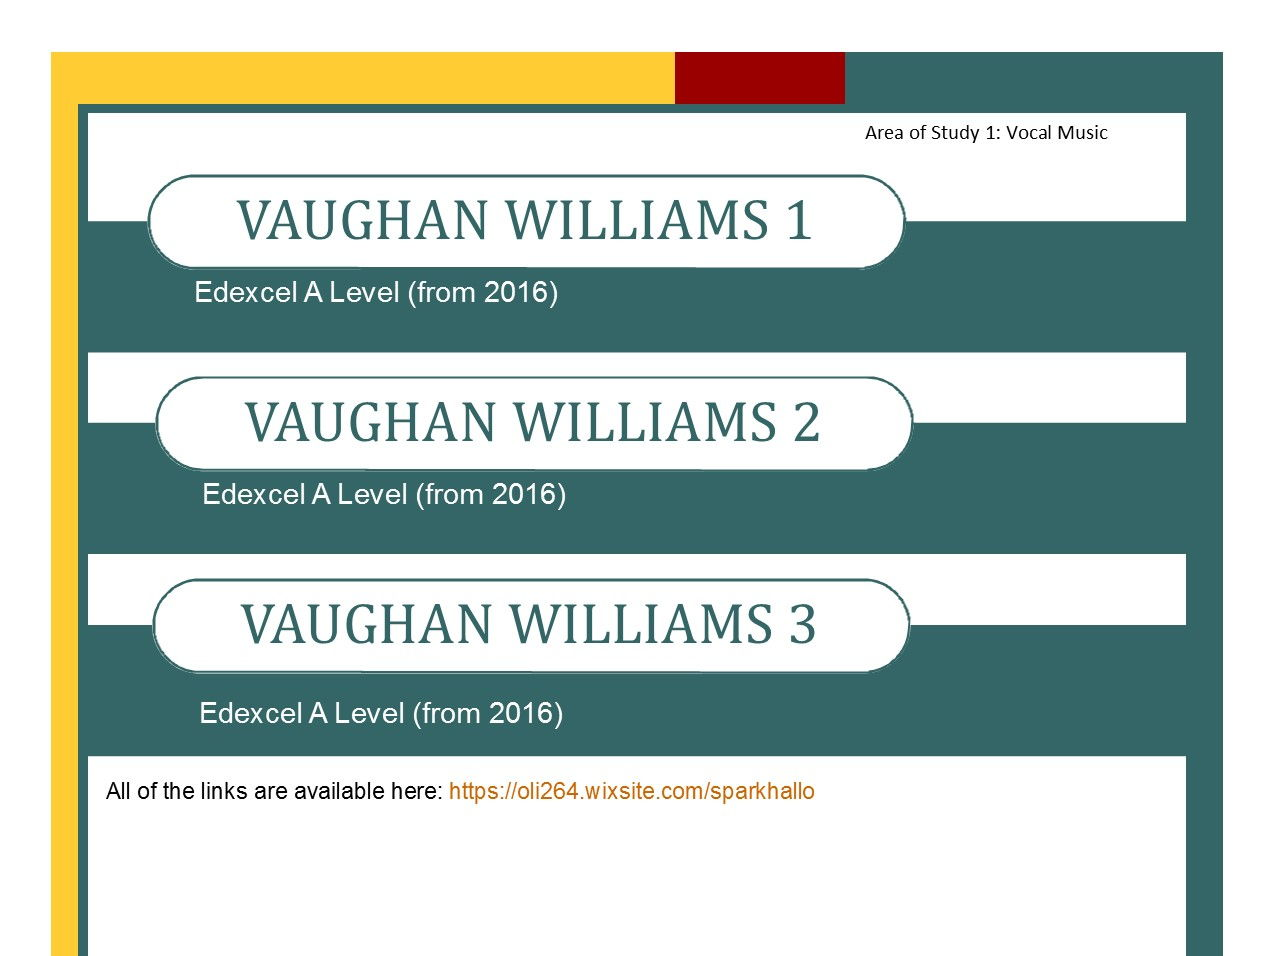 Edexcel Music A Level Bundle of Vaughan Williams 1, Vaughan Williams 2 and Vaughan Williams 3 - Loads of Wider Listening